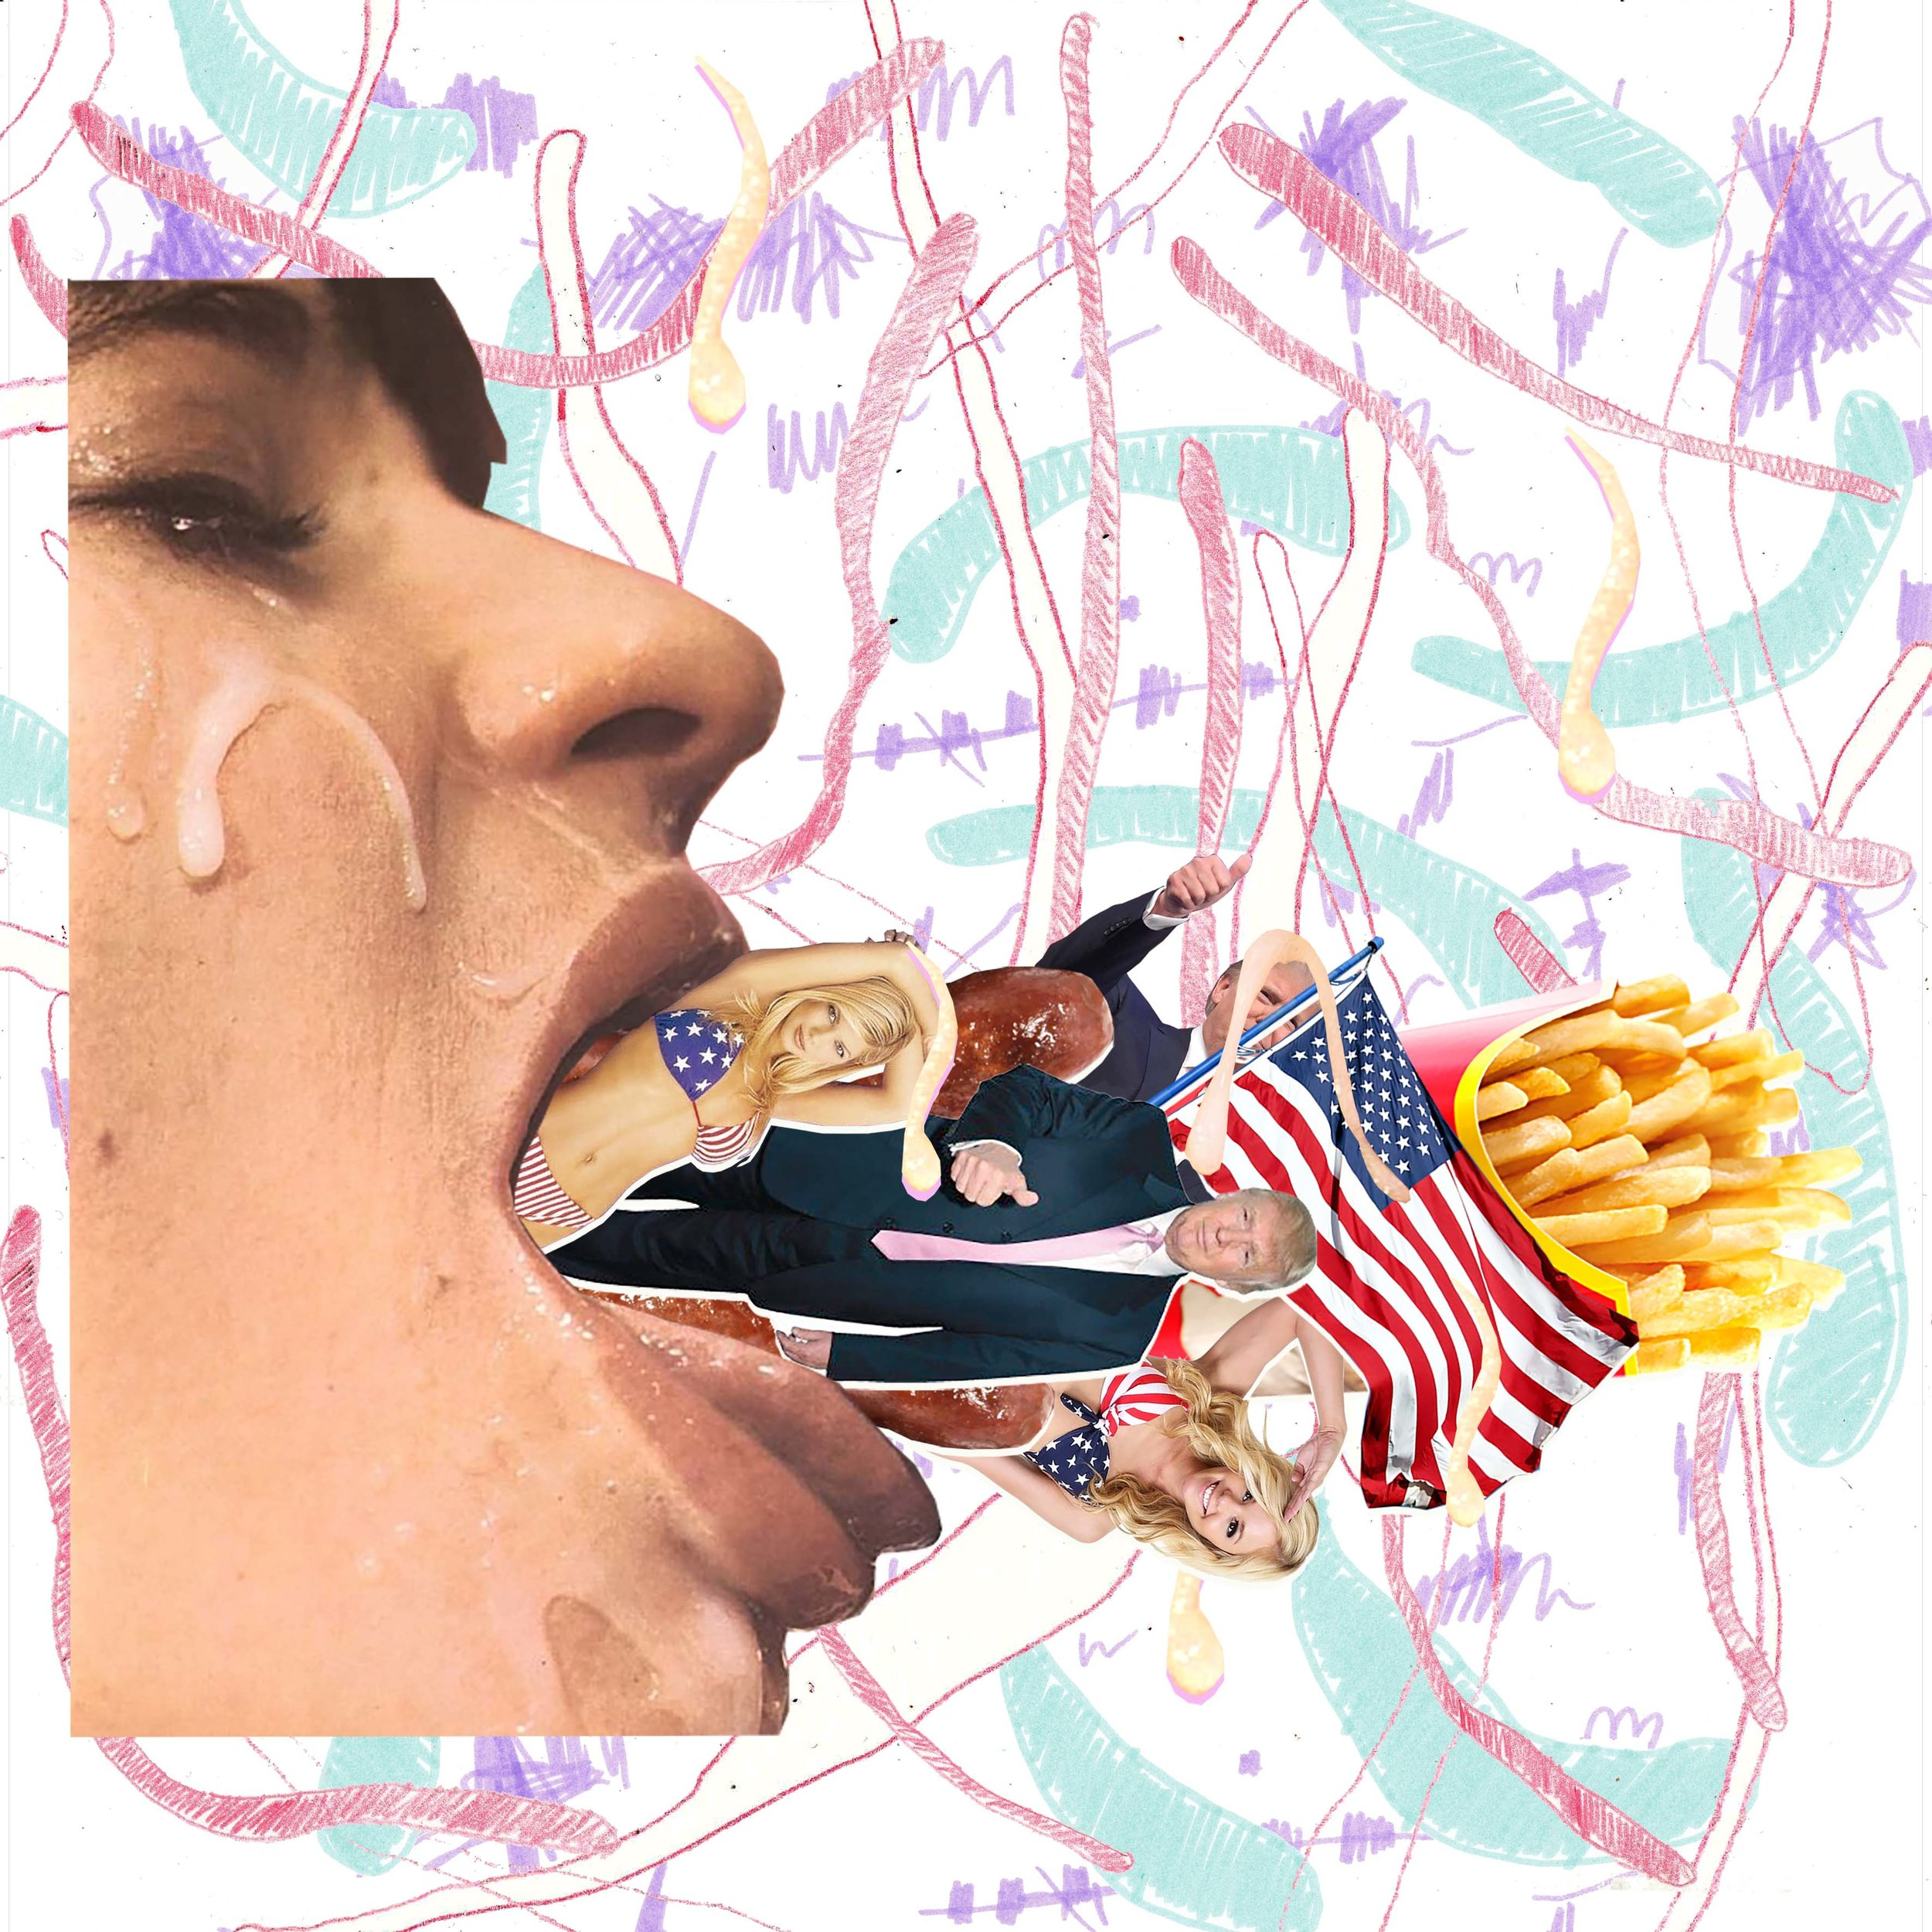 Illustrations accompanying an essay on Transgender & Donald Trump for Polyester Zine  http://www.polyesterzine.com/opinion/woman-in-the-world-trump-as-trans